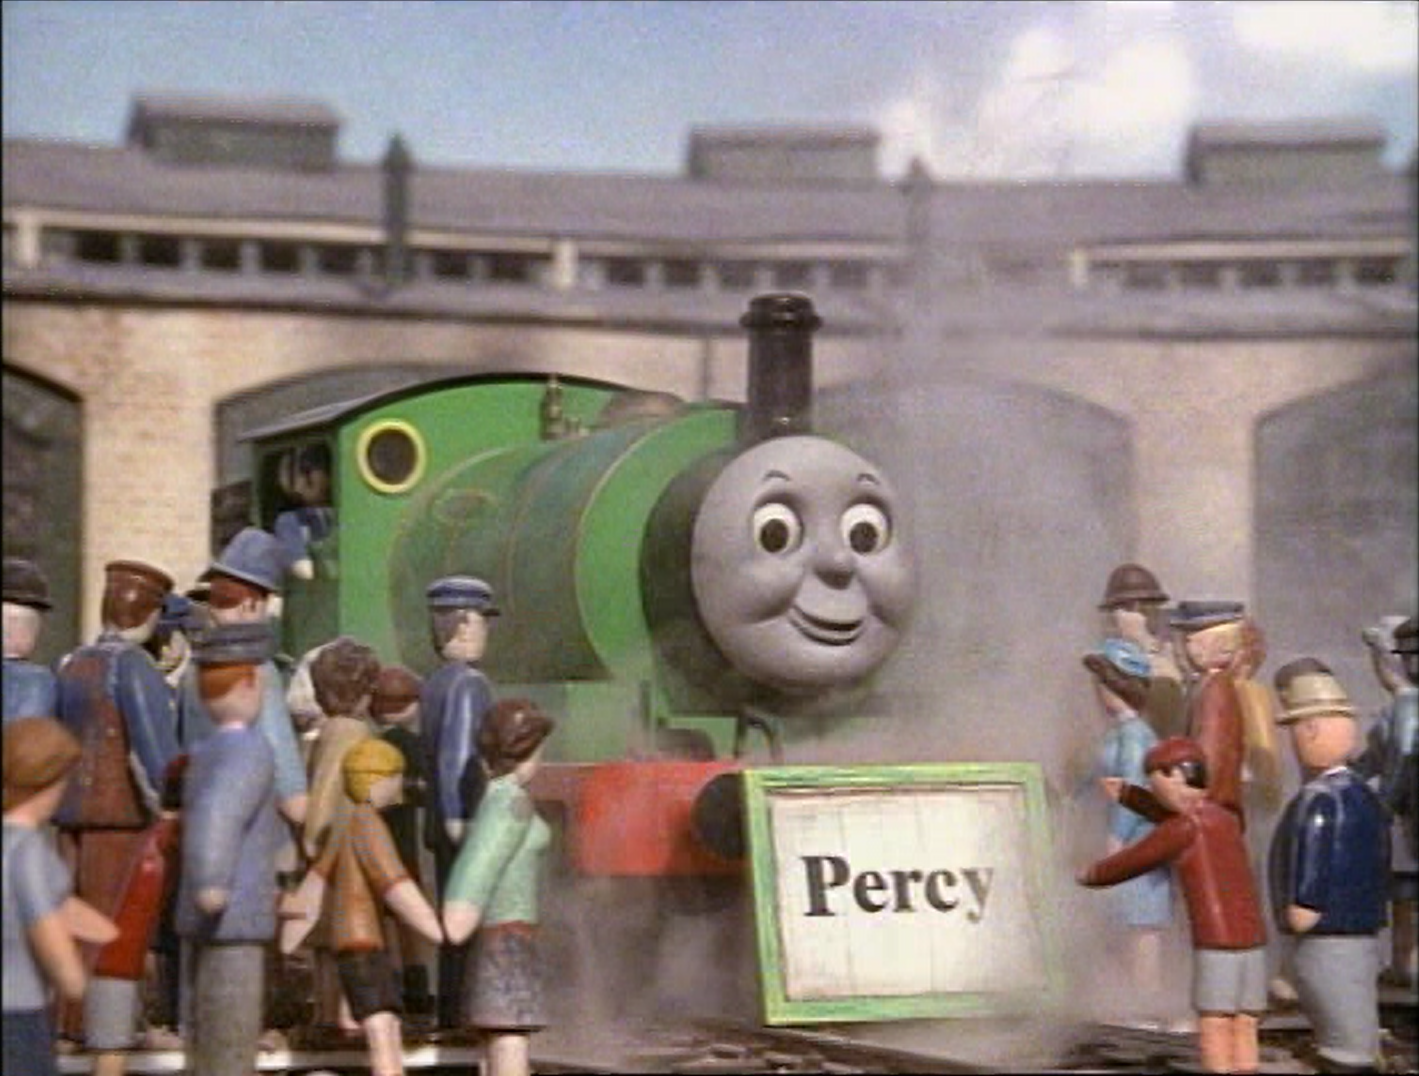 Image - Percywithnameboard.png | Thomas the Tank Engine Wikia | FANDOM powered by Wikia